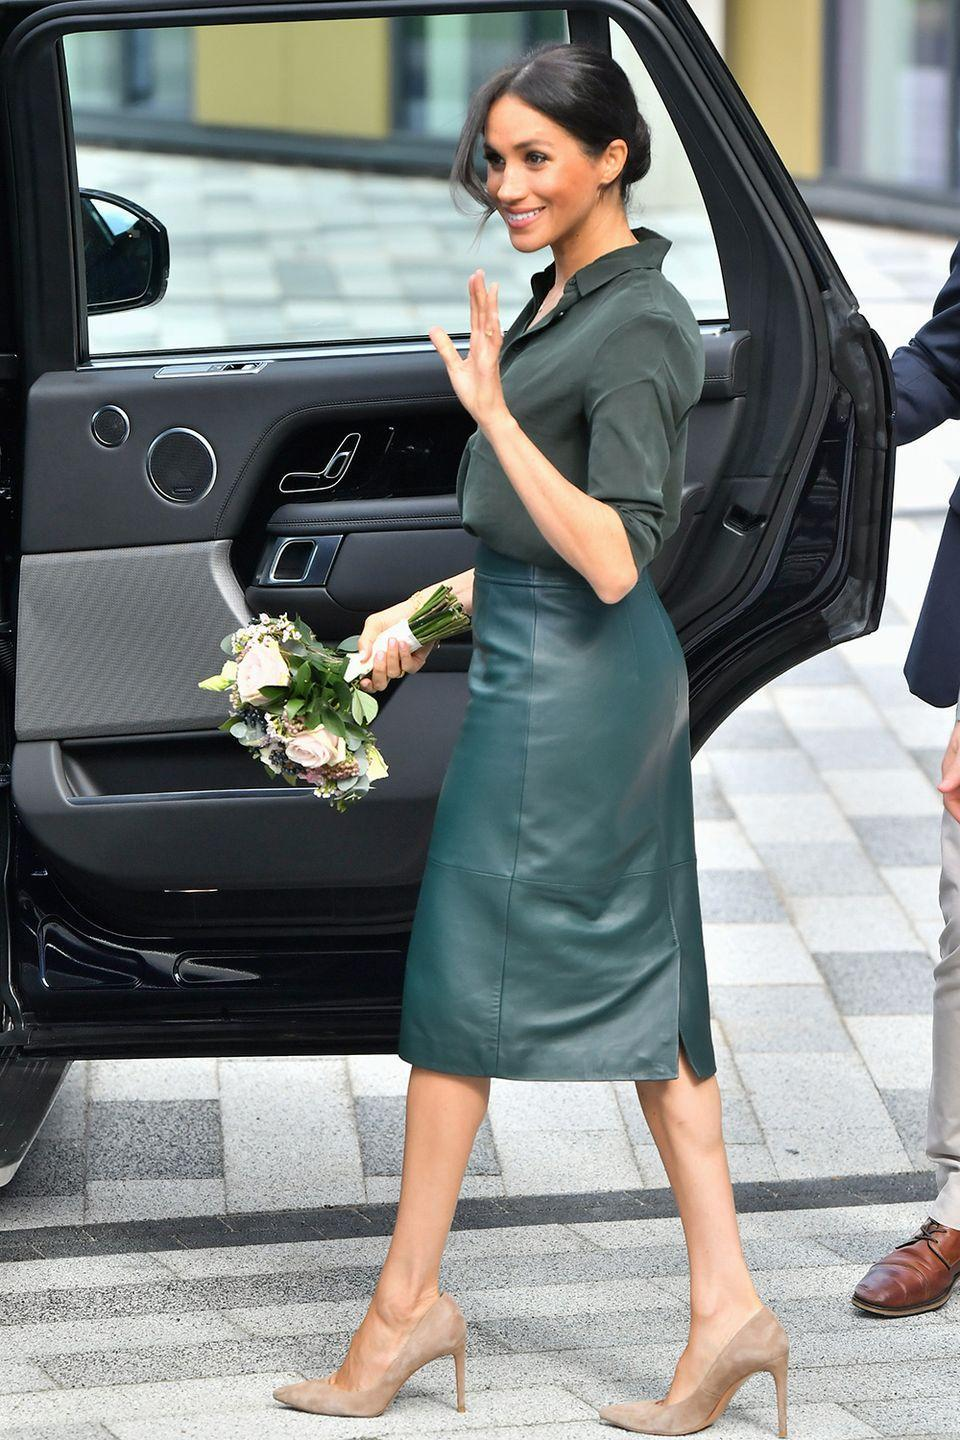 <p>Another clever outfit choice from Meghan here around the 10-week mark. Wearing a Hugo Boss high-waisted pencil skirt in a rigid material like leather meant it skimmed over her ever-so-slightly protruding stomach.</p>